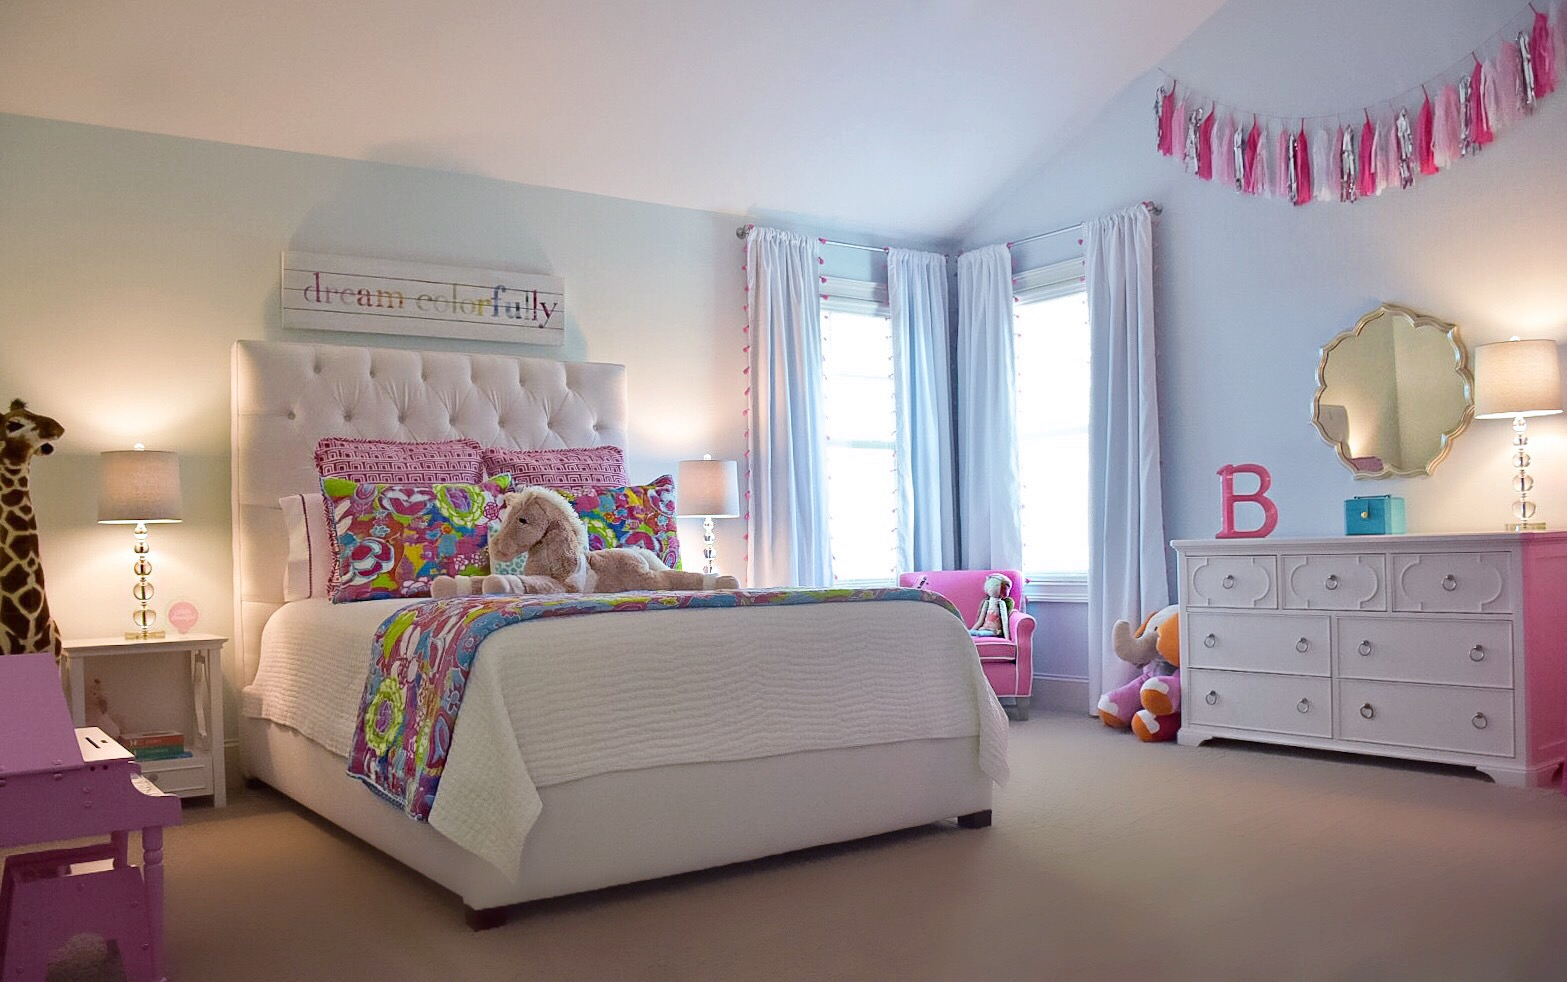 B.Love's Big Girl Room : Room Tour - Taylor Brandenburg on Room Girl  id=97418